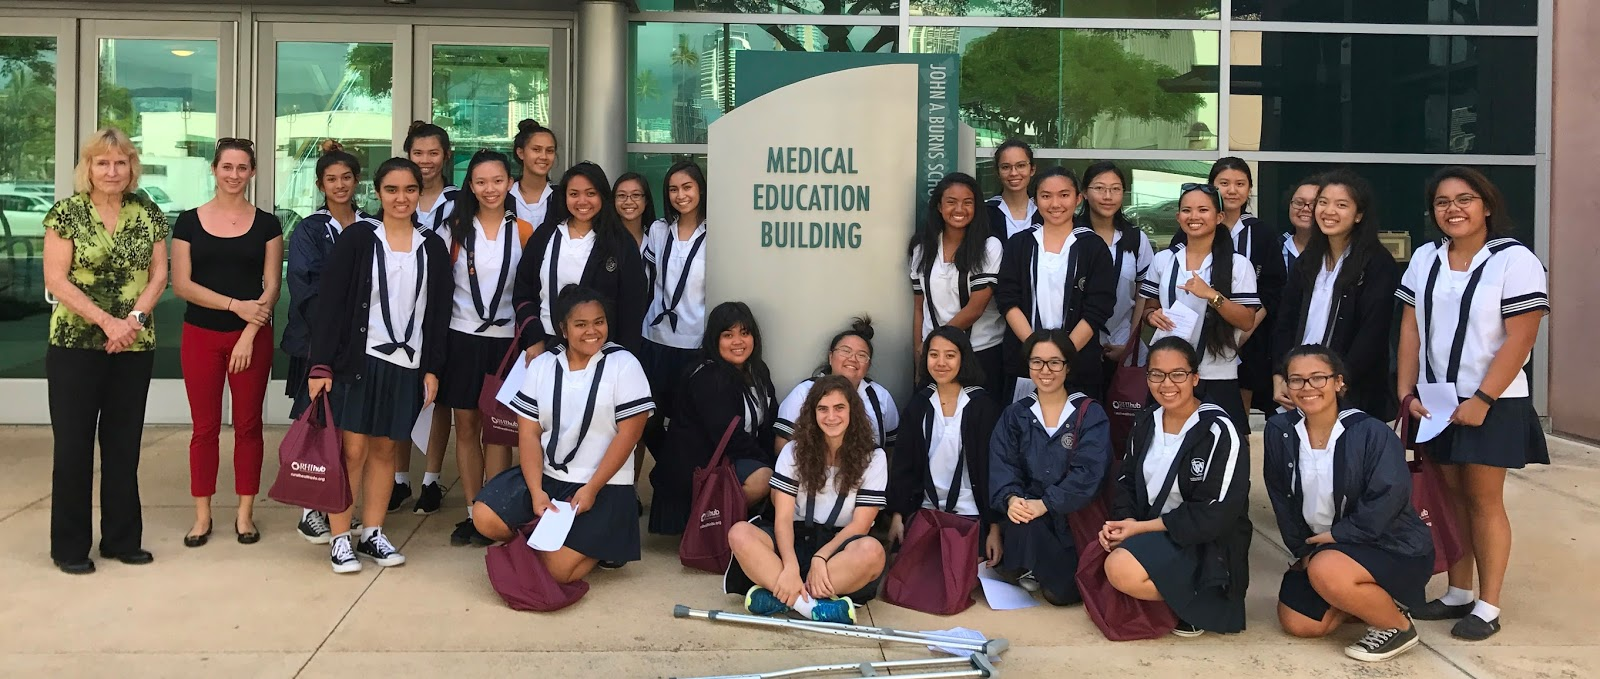 Sacred Hearts Academy - The Blog: Visit to School of Medicine ...